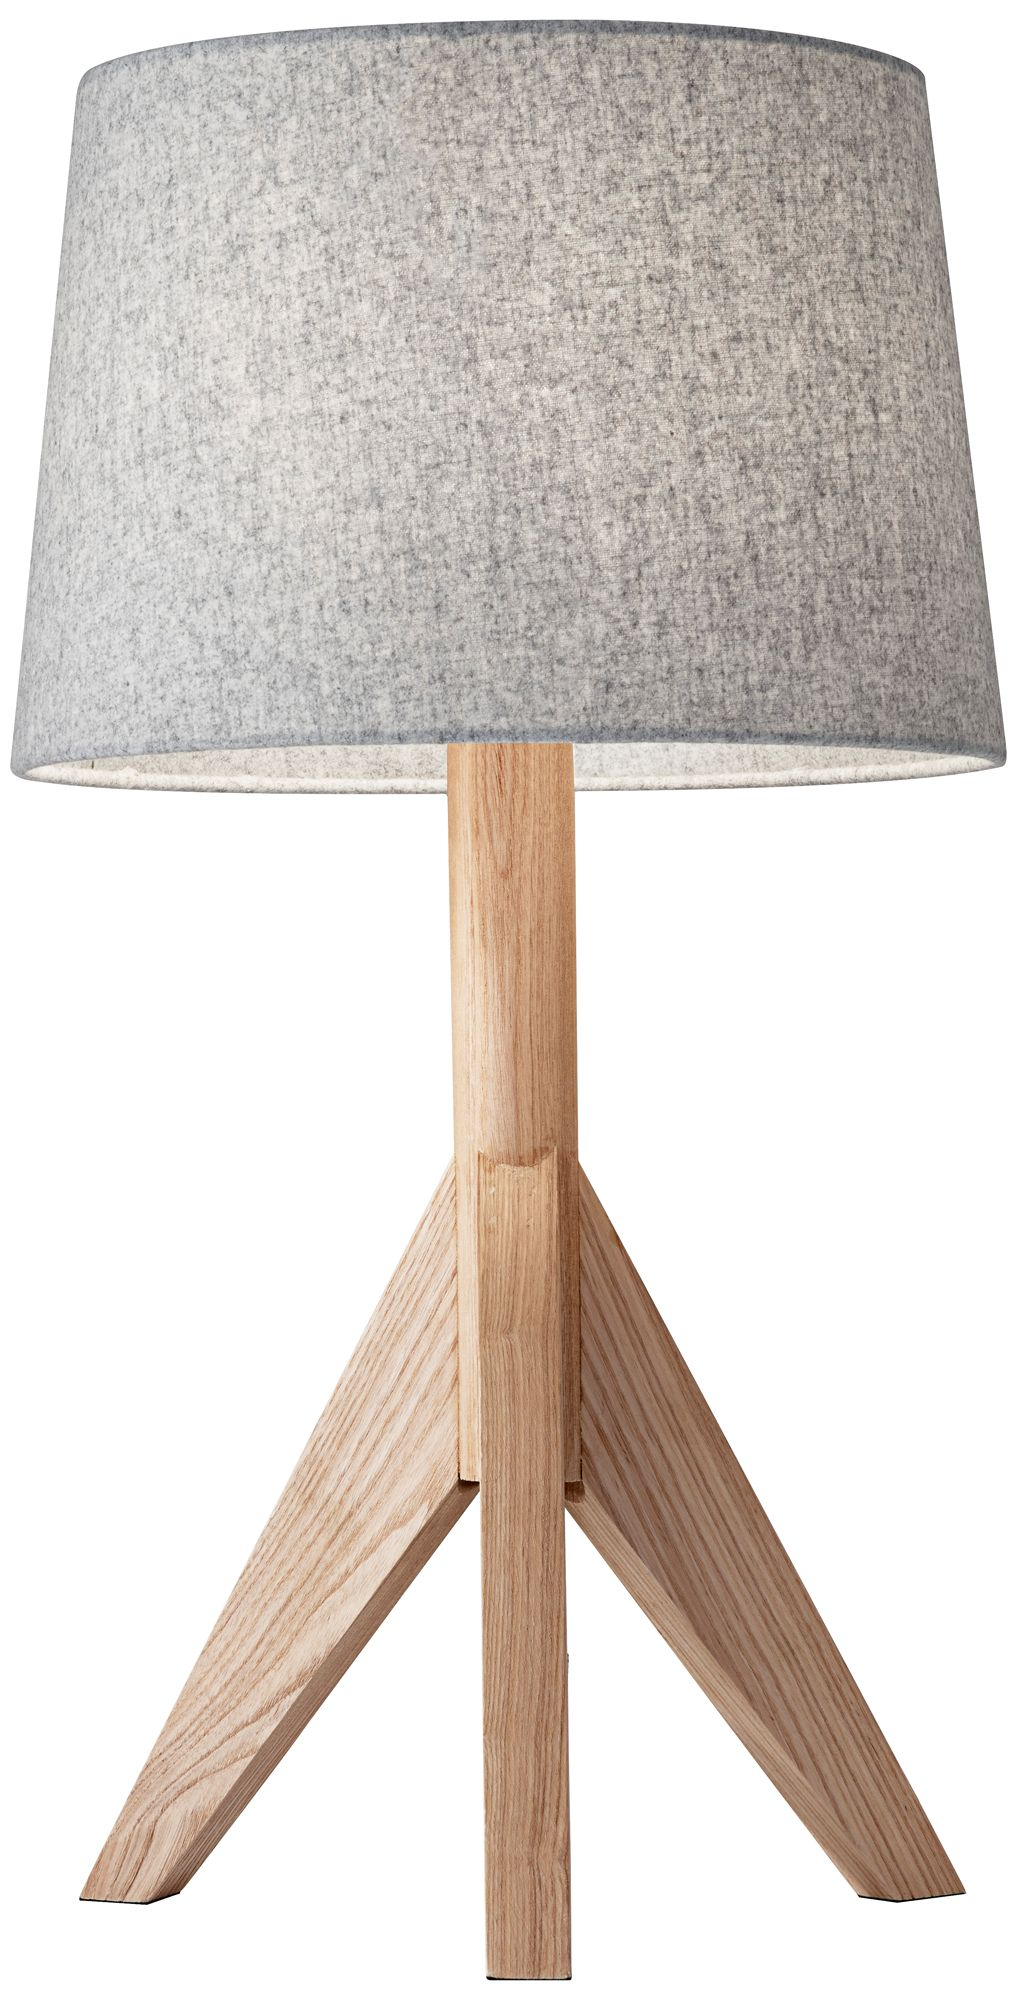 Superbe Eden Natural Ash Wood Tripod Table Lamp